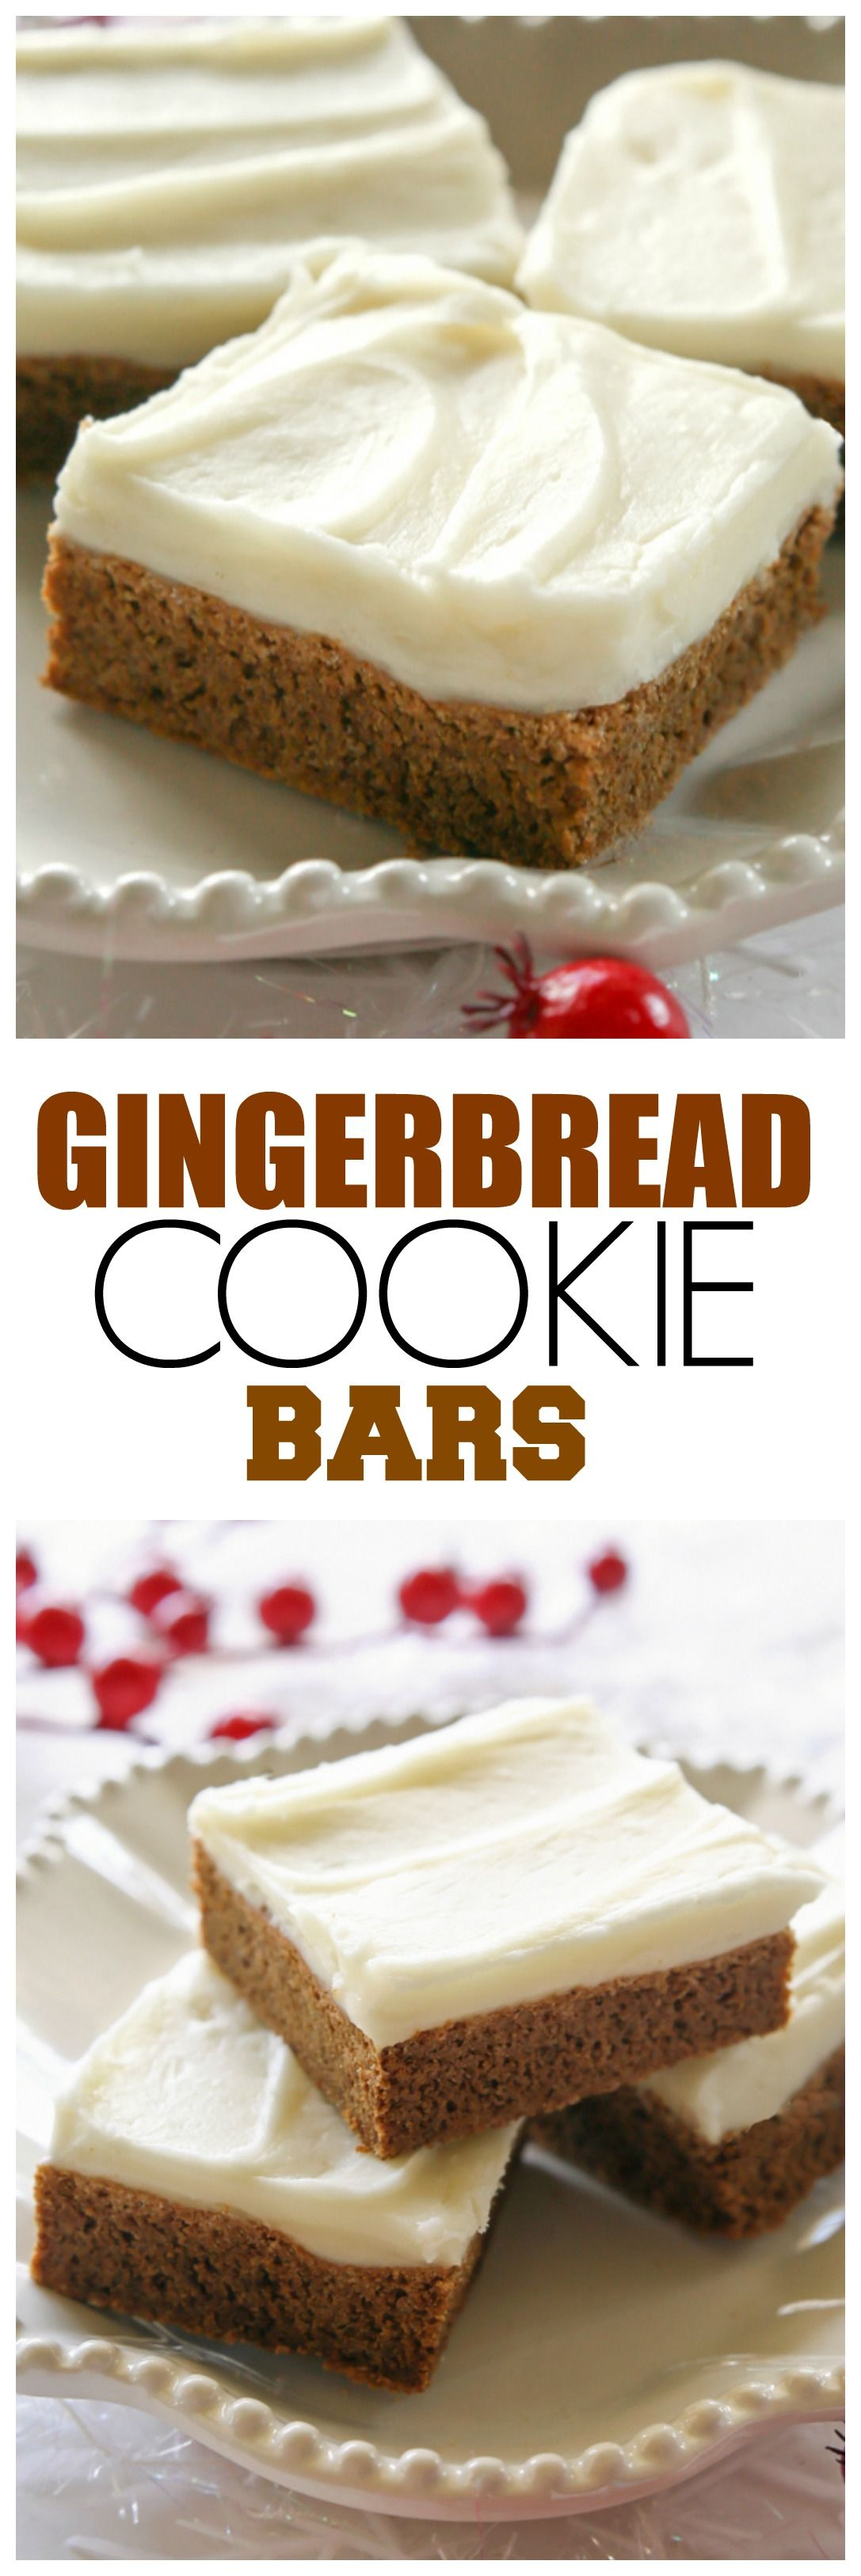 Gingerbread Cookie Bars - The Girl Who Ate Everything